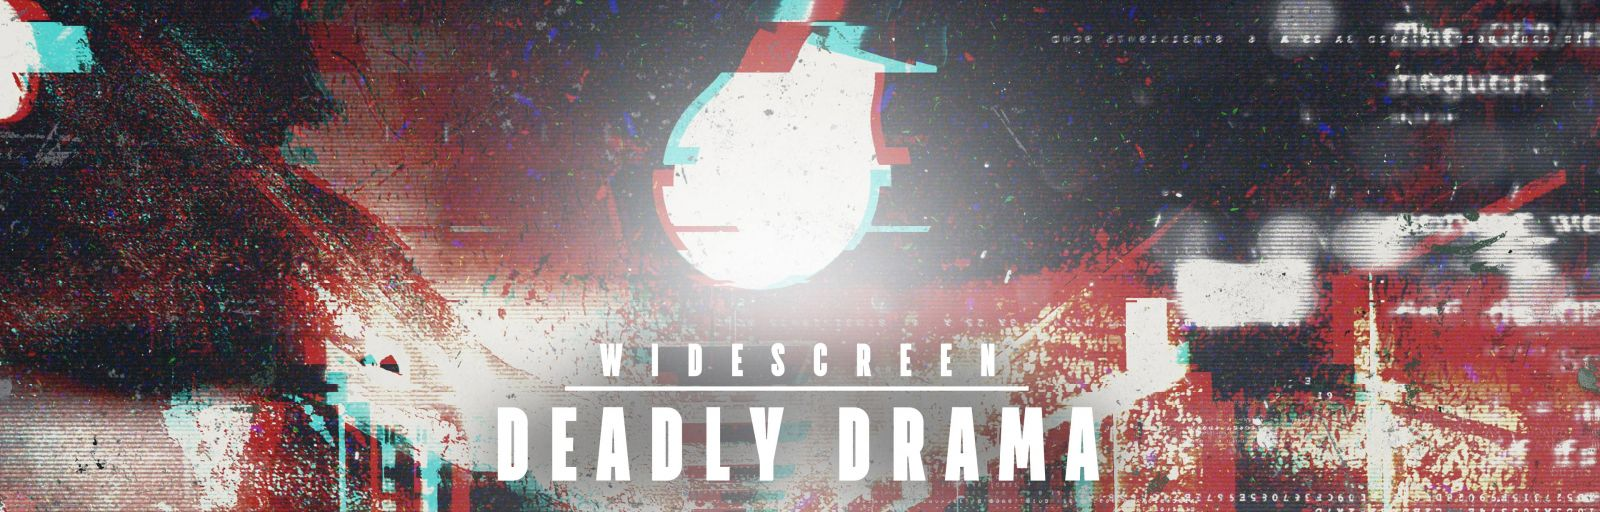 Deadly Drama - Widescreen